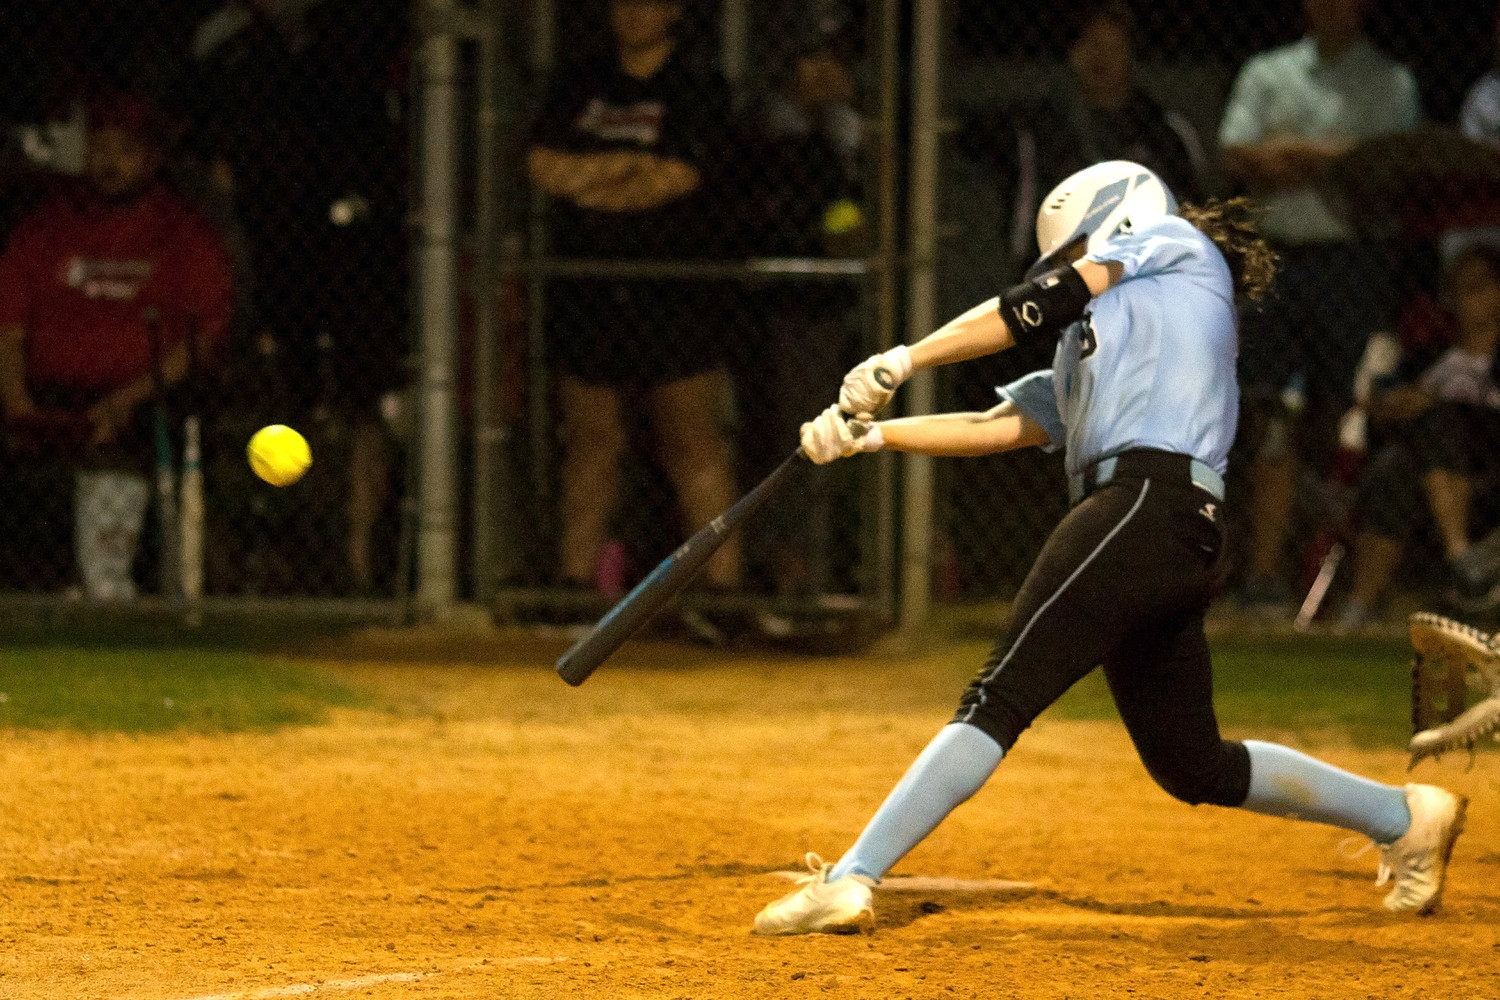 Michelle Leone delivers a base hit to drive in the Sharks only run